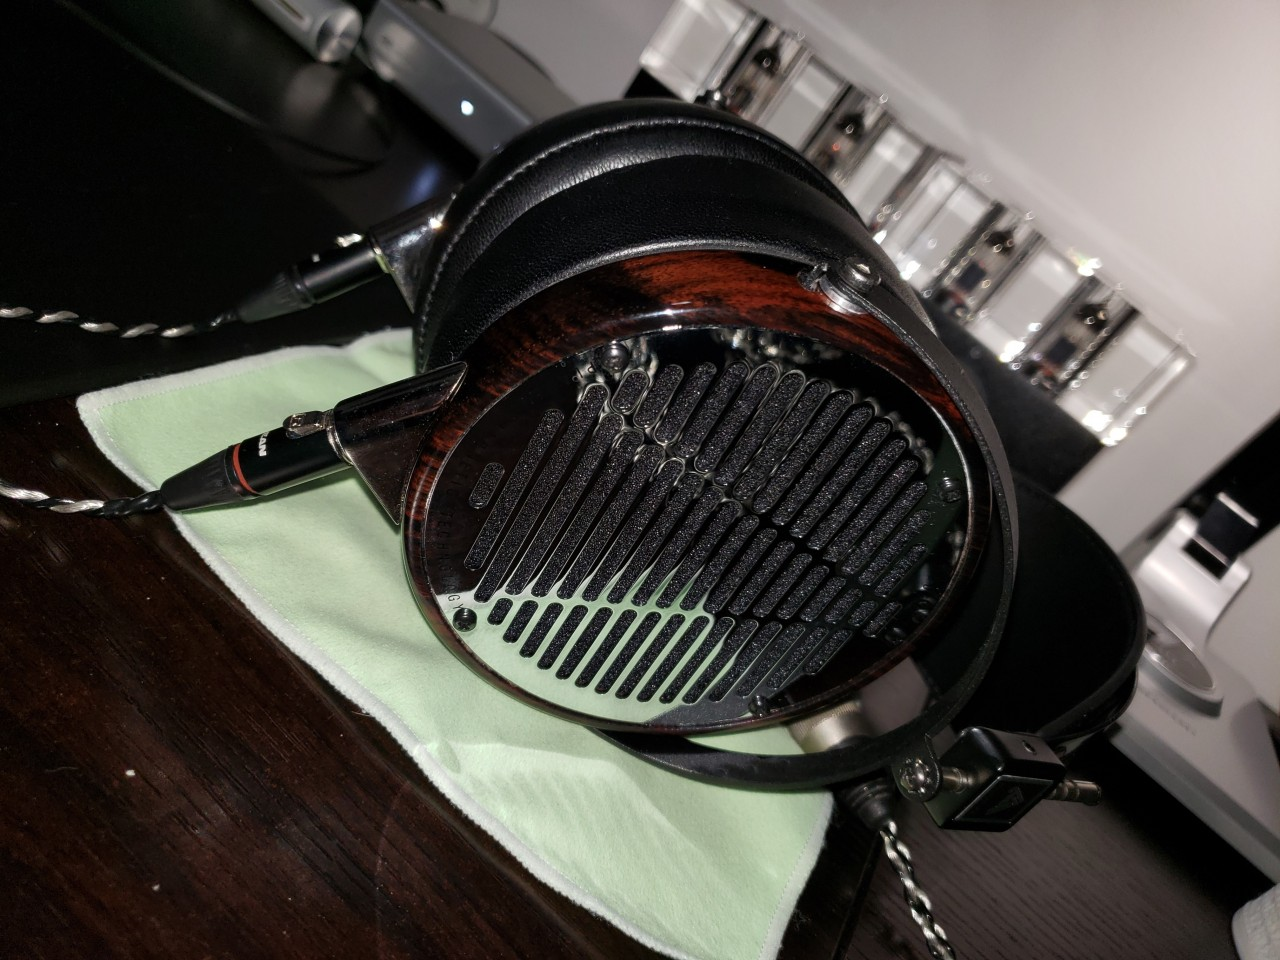 LCD-4 .. Simply beautiful ..OTHER WORLDLY and my favorite all time cans.